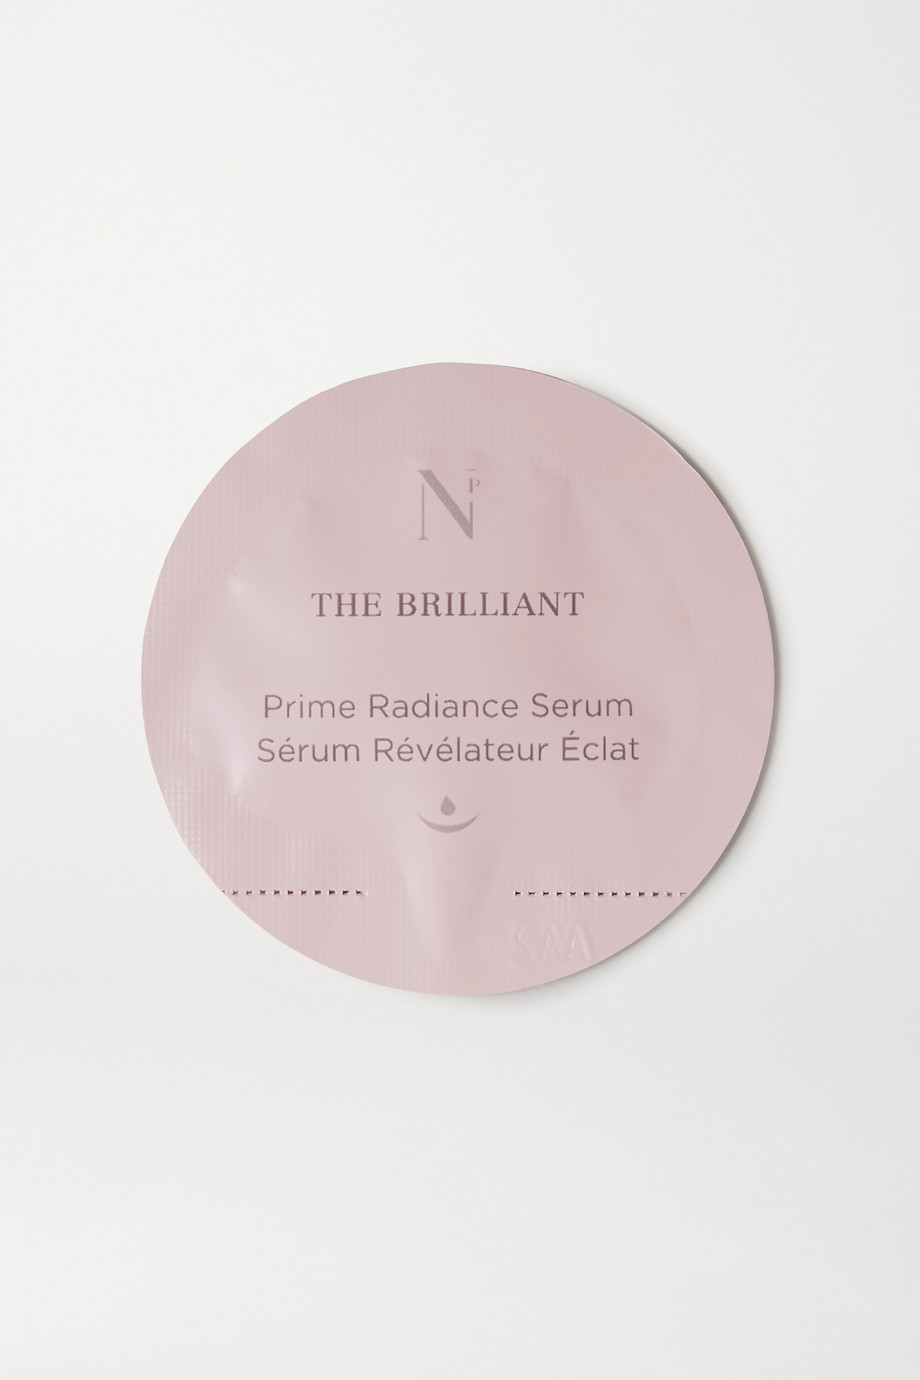 Noble Panacea The Brilliant Prime Radiance Serum, 30 x 0.5ml